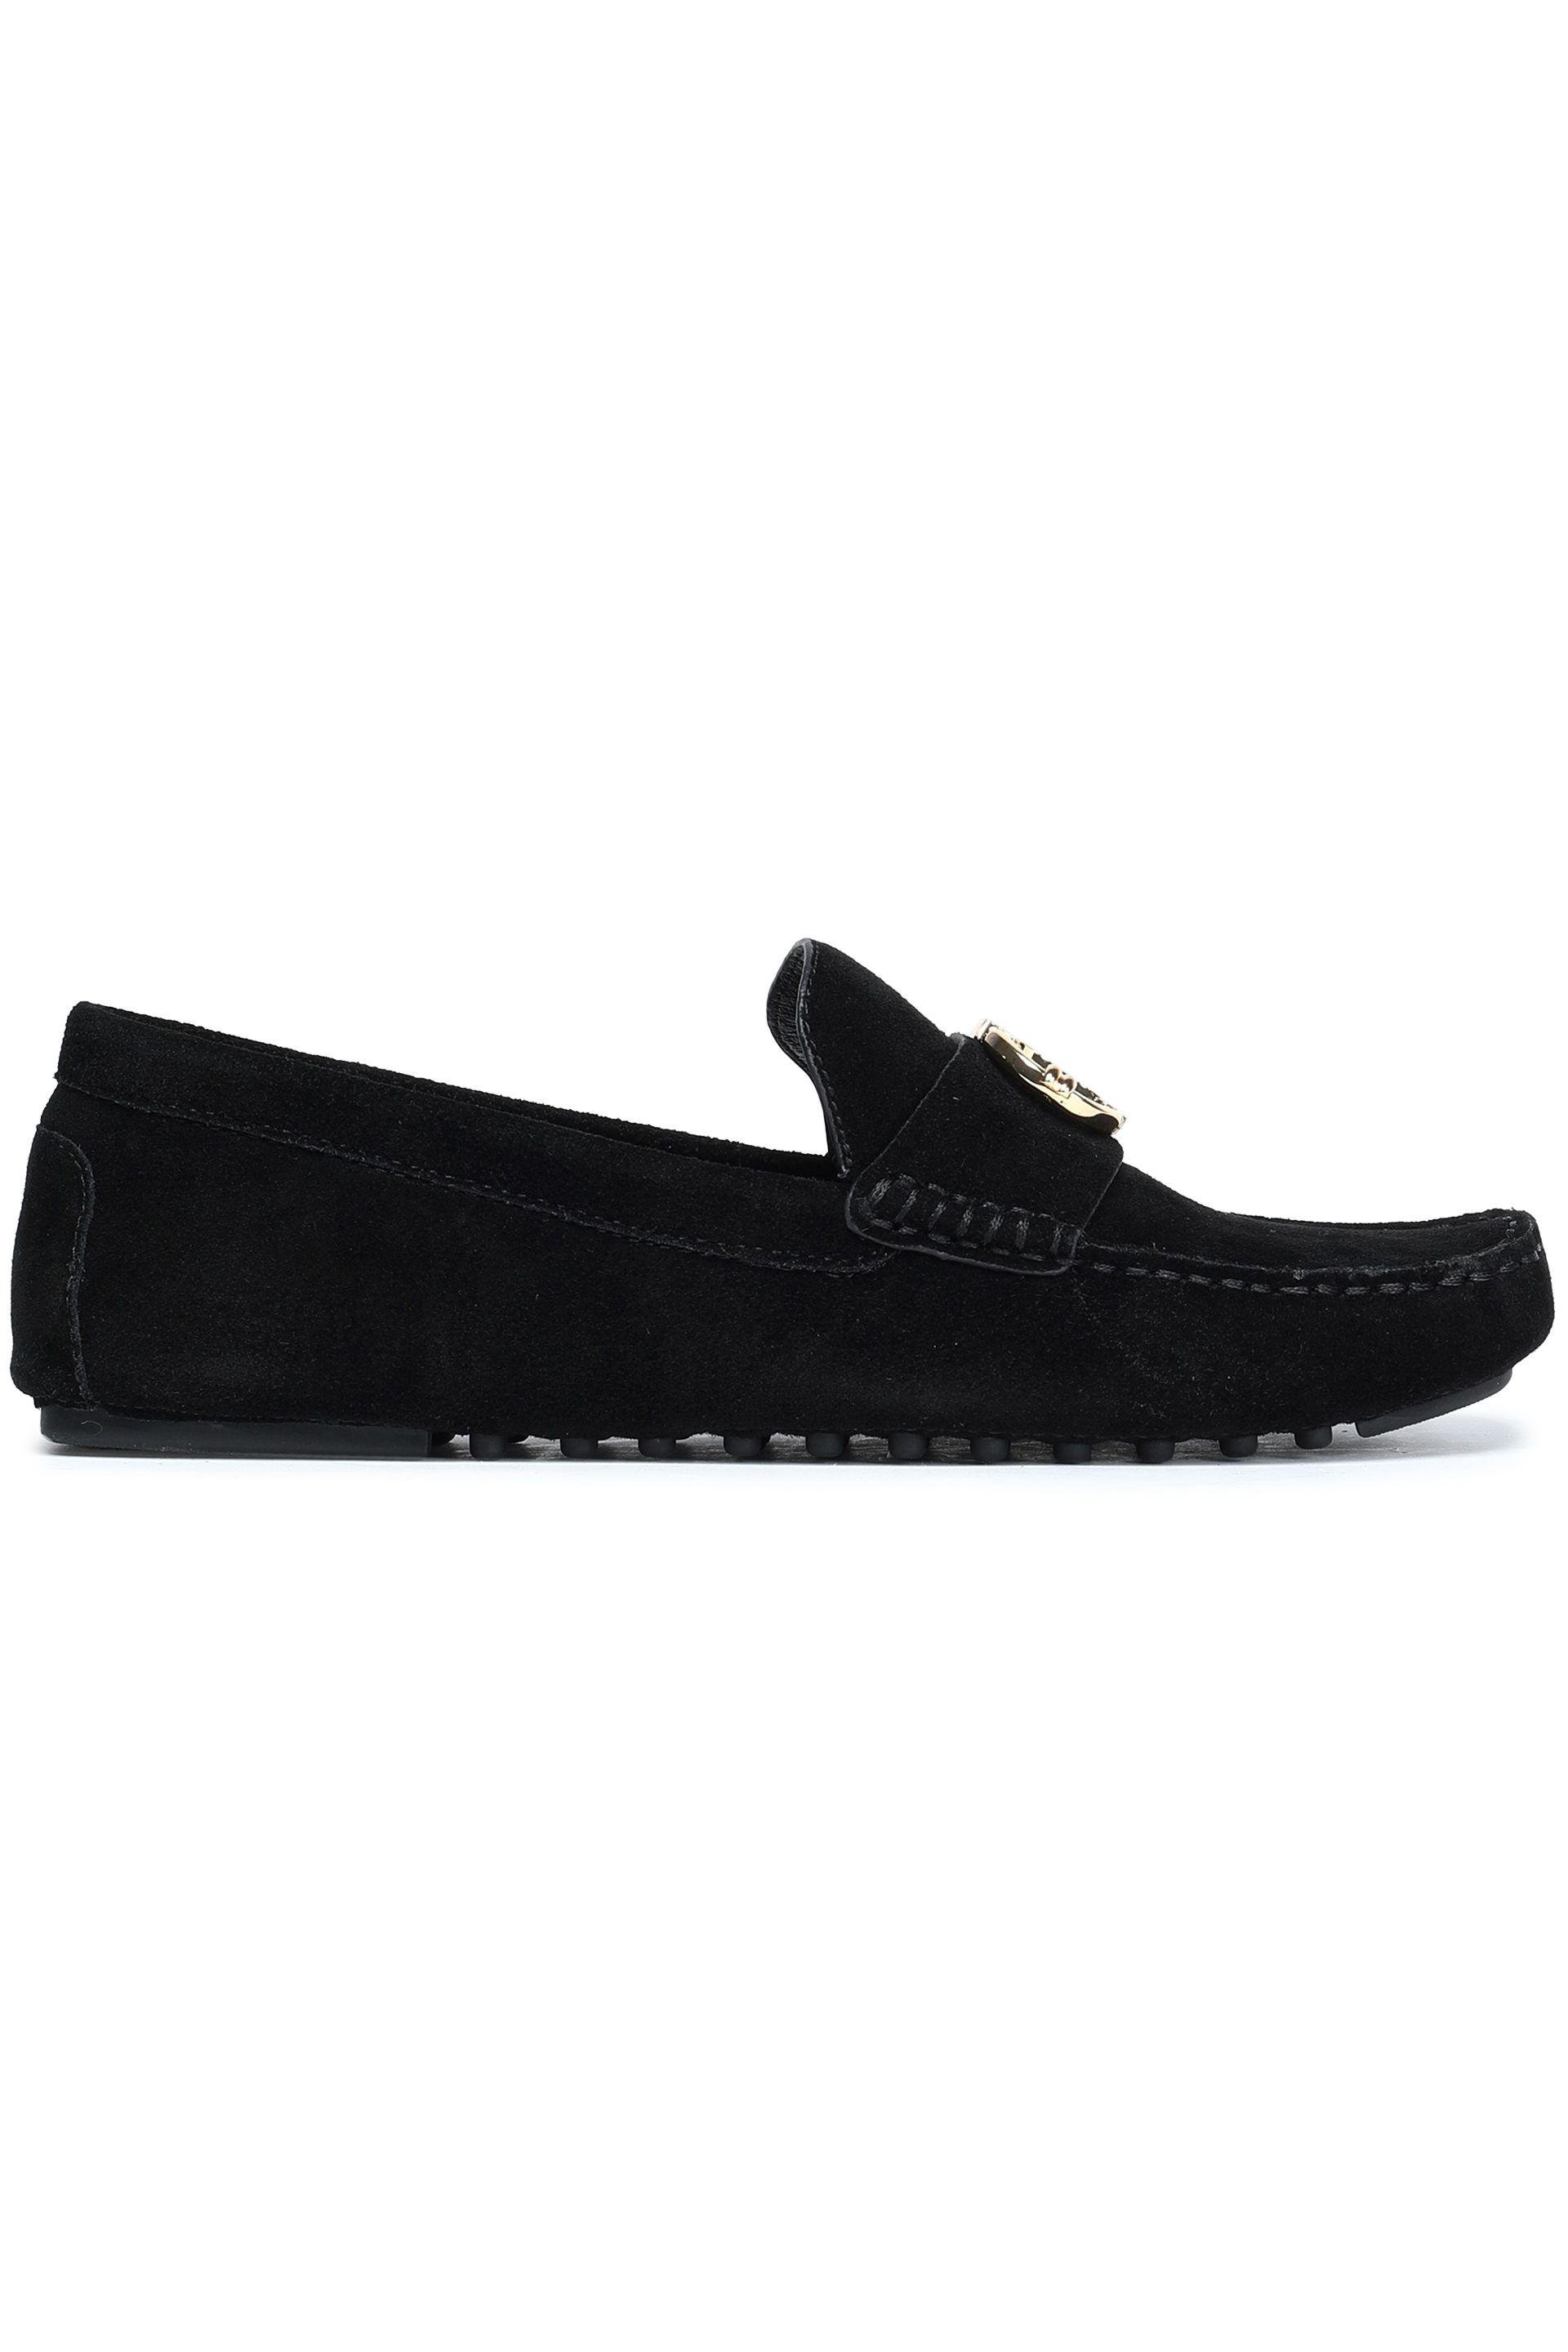 717c75708c1c Tory Burch Embellished Suede Loafers in Black - Lyst